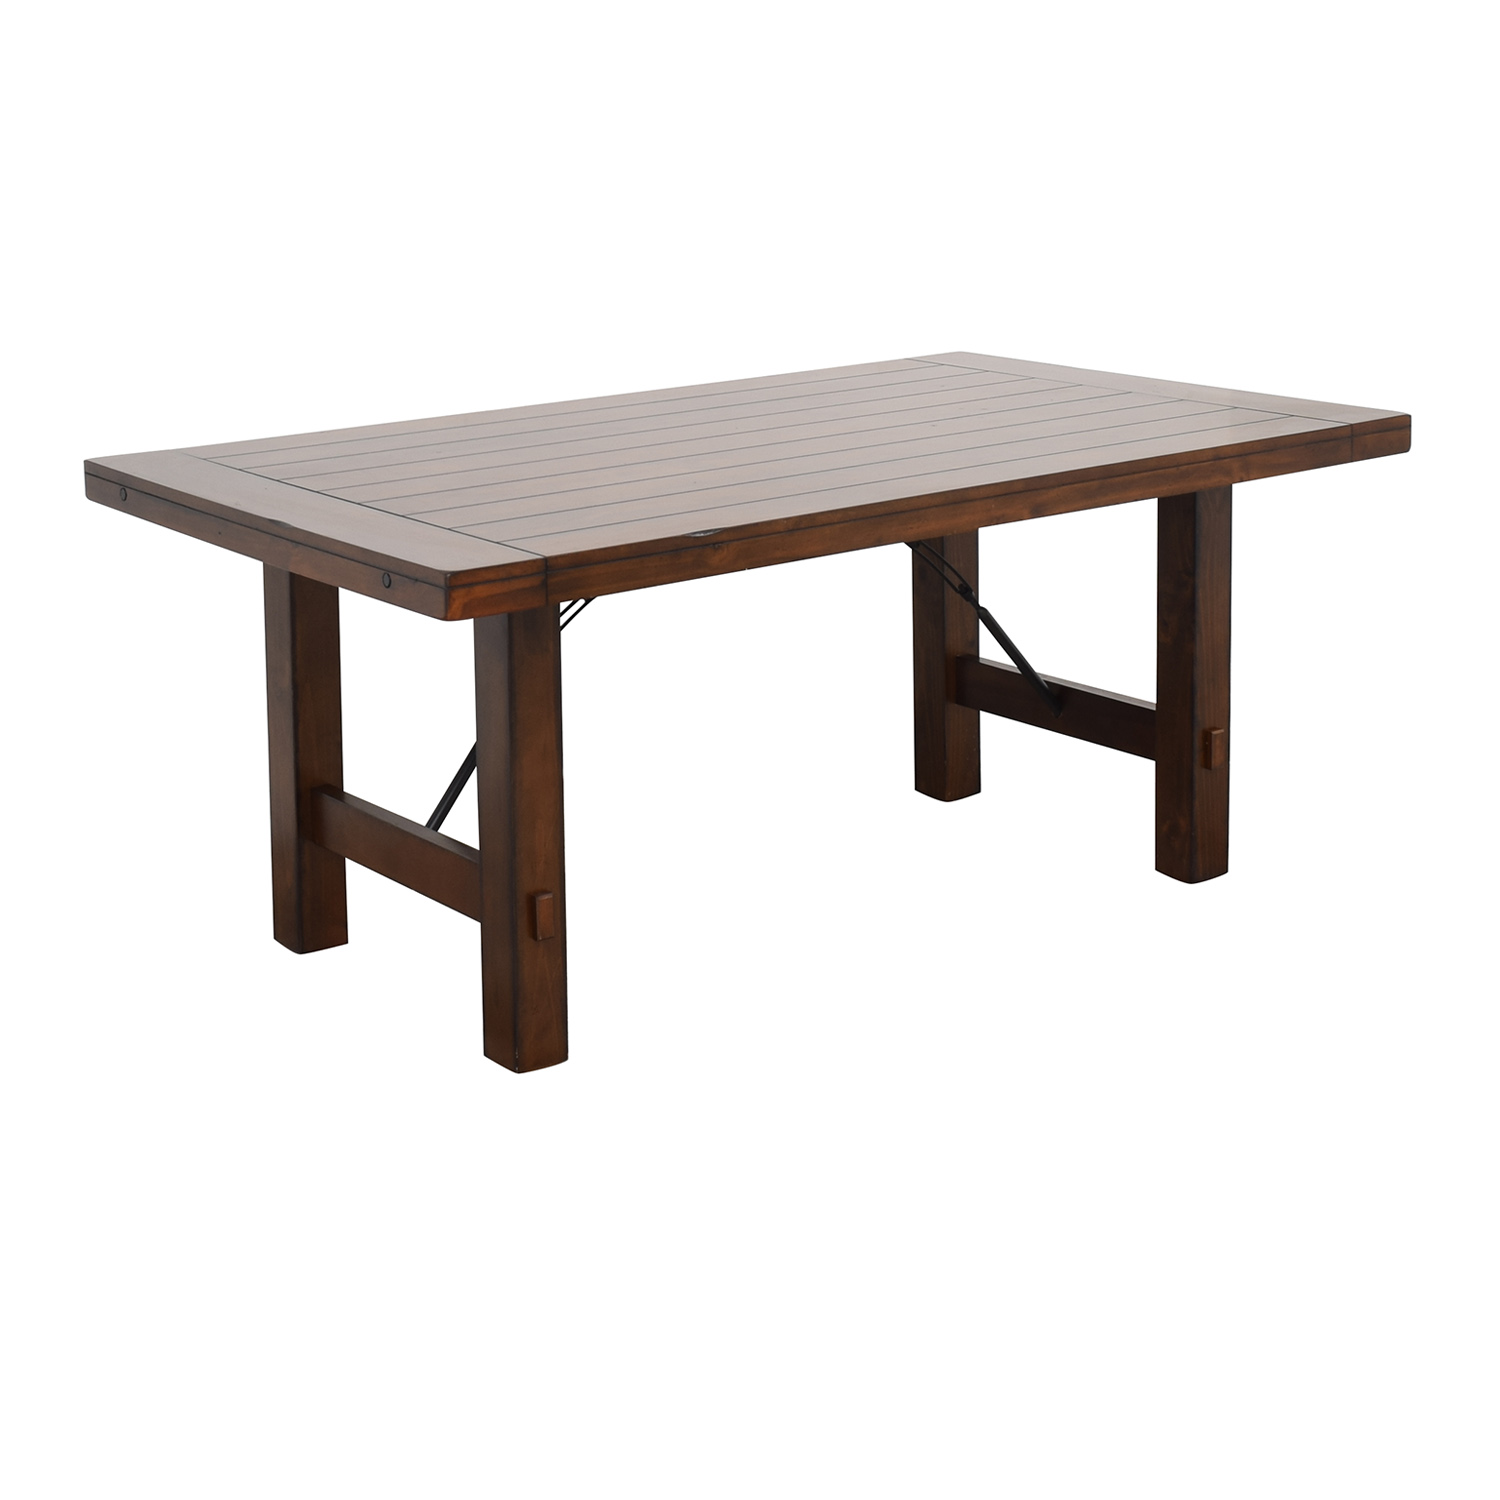 Wayfair Wayfair Dining Room Table nj